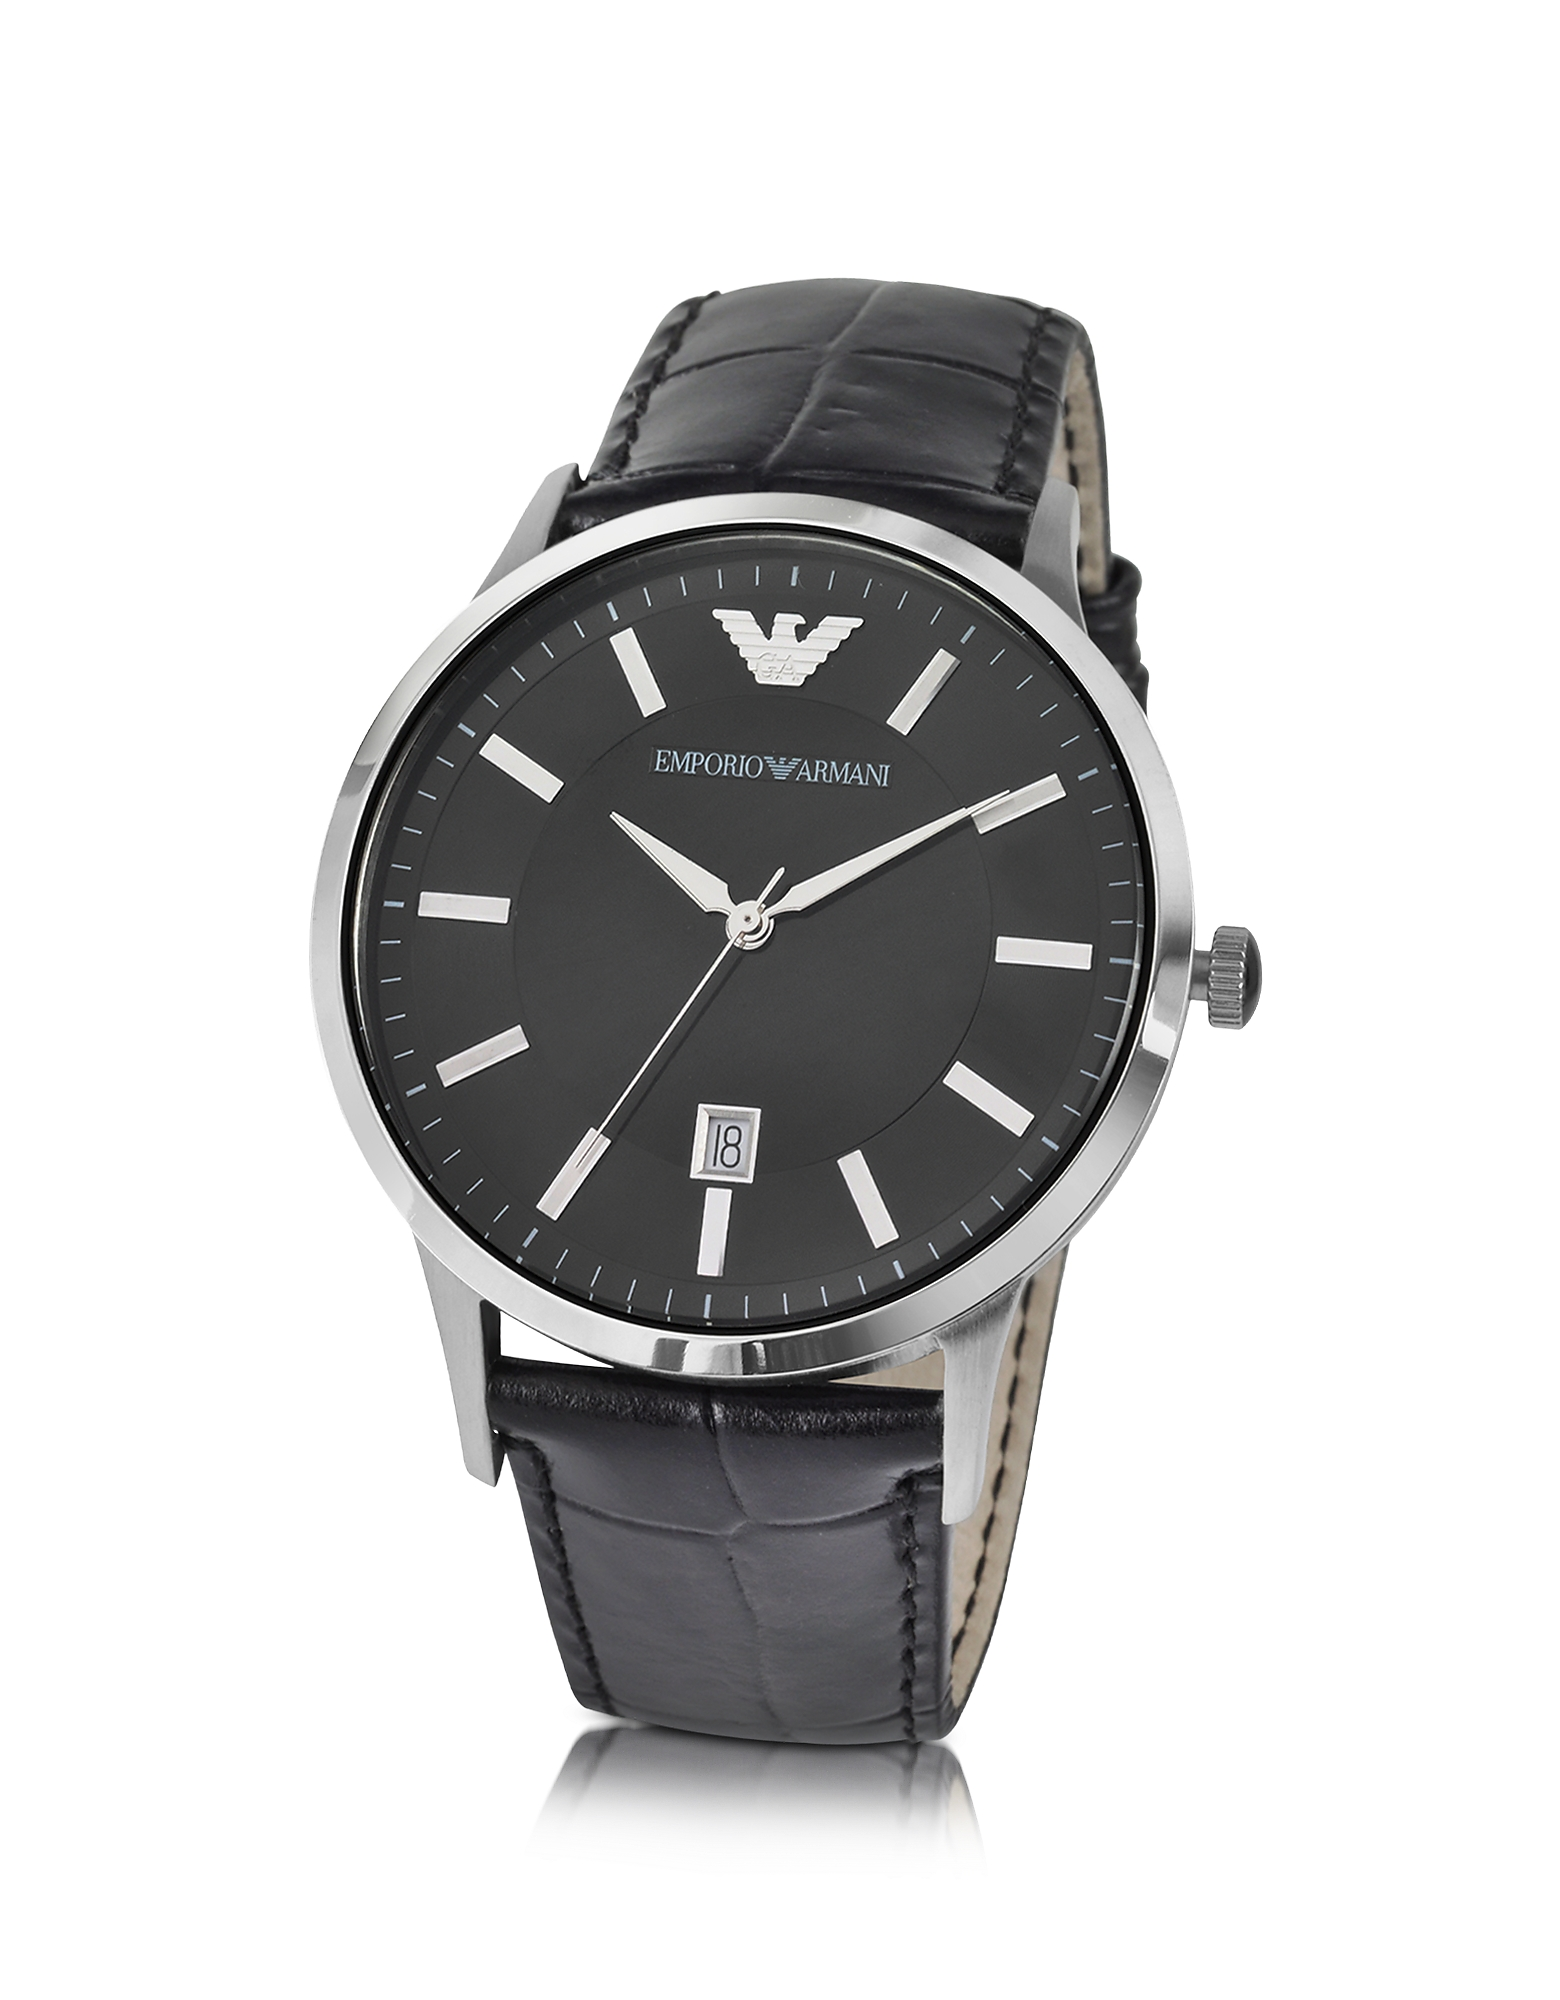 Emporio Armani Men's Watches, Men's Black Dial Stainless Steel Date Watch